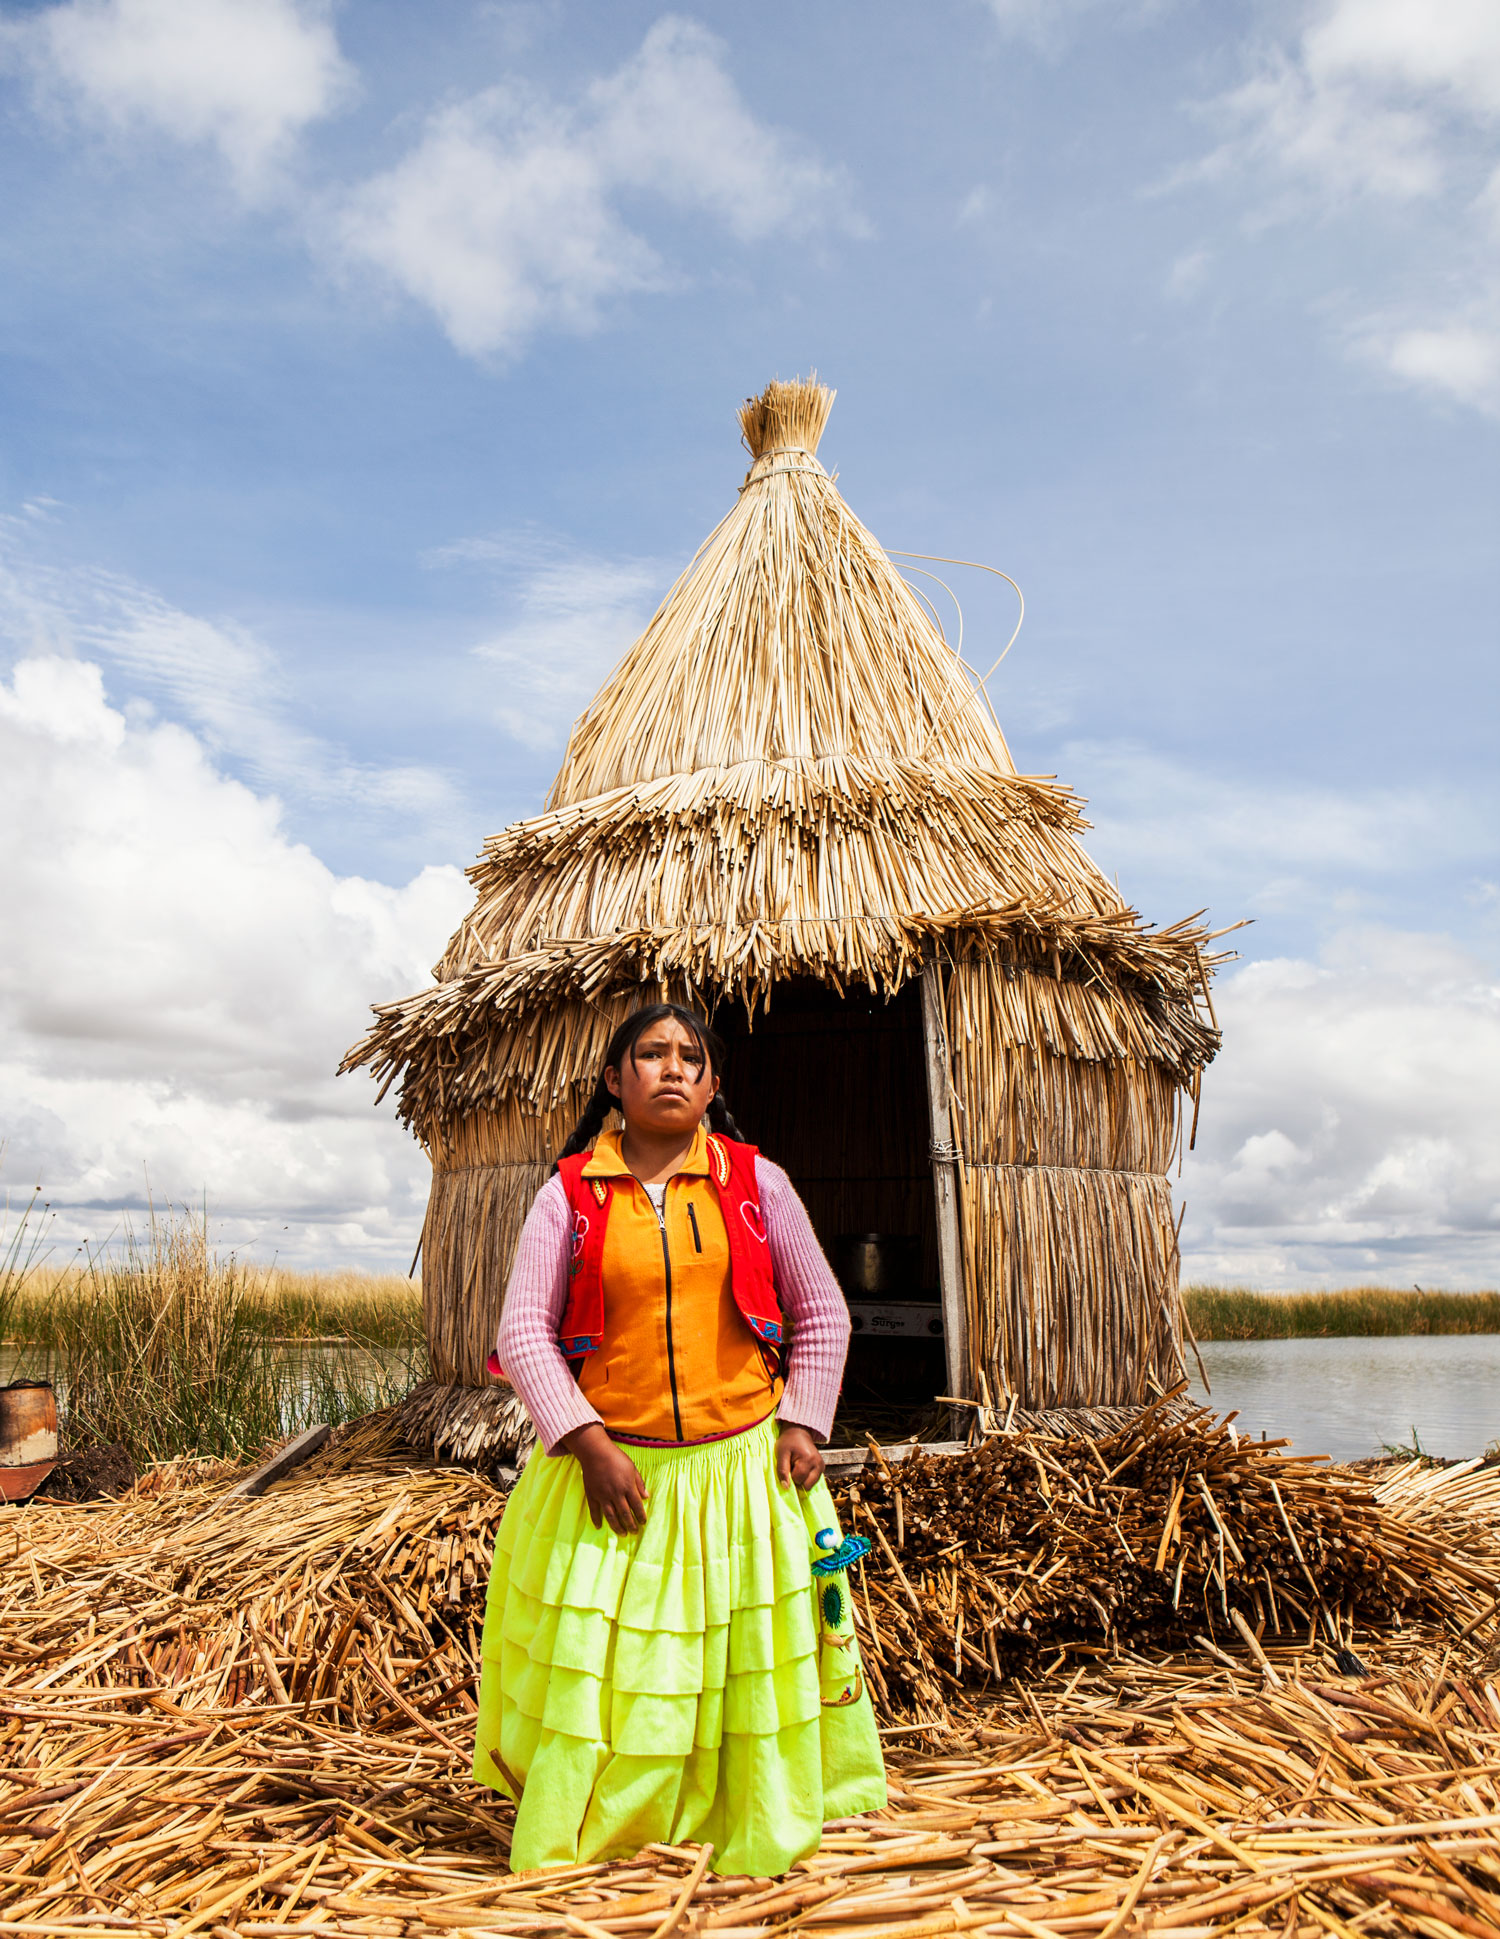 lake-titicaca-puno-peru-wander-south-reed-islands-girl.jpg